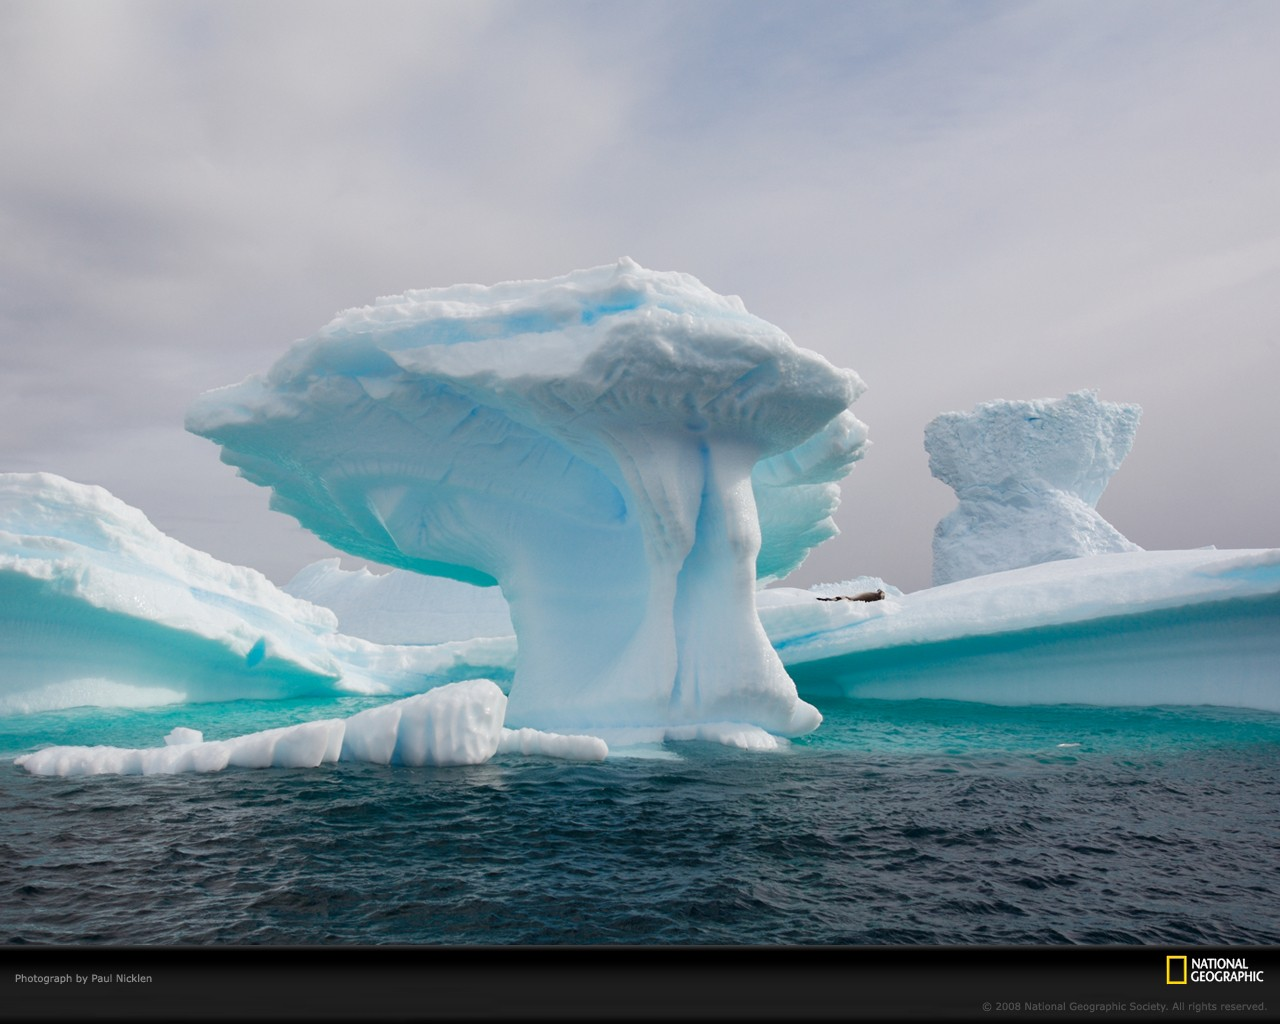 http://3.bp.blogspot.com/-ig-ikD1VgxI/UDu0OPK4ieI/AAAAAAAAJ7I/SXyq2ttqPPk/s1600/water_sea_design_national_geographic_icebergs_cube_natural_desktop_1280x1024_wallpaper-1074588.jpg